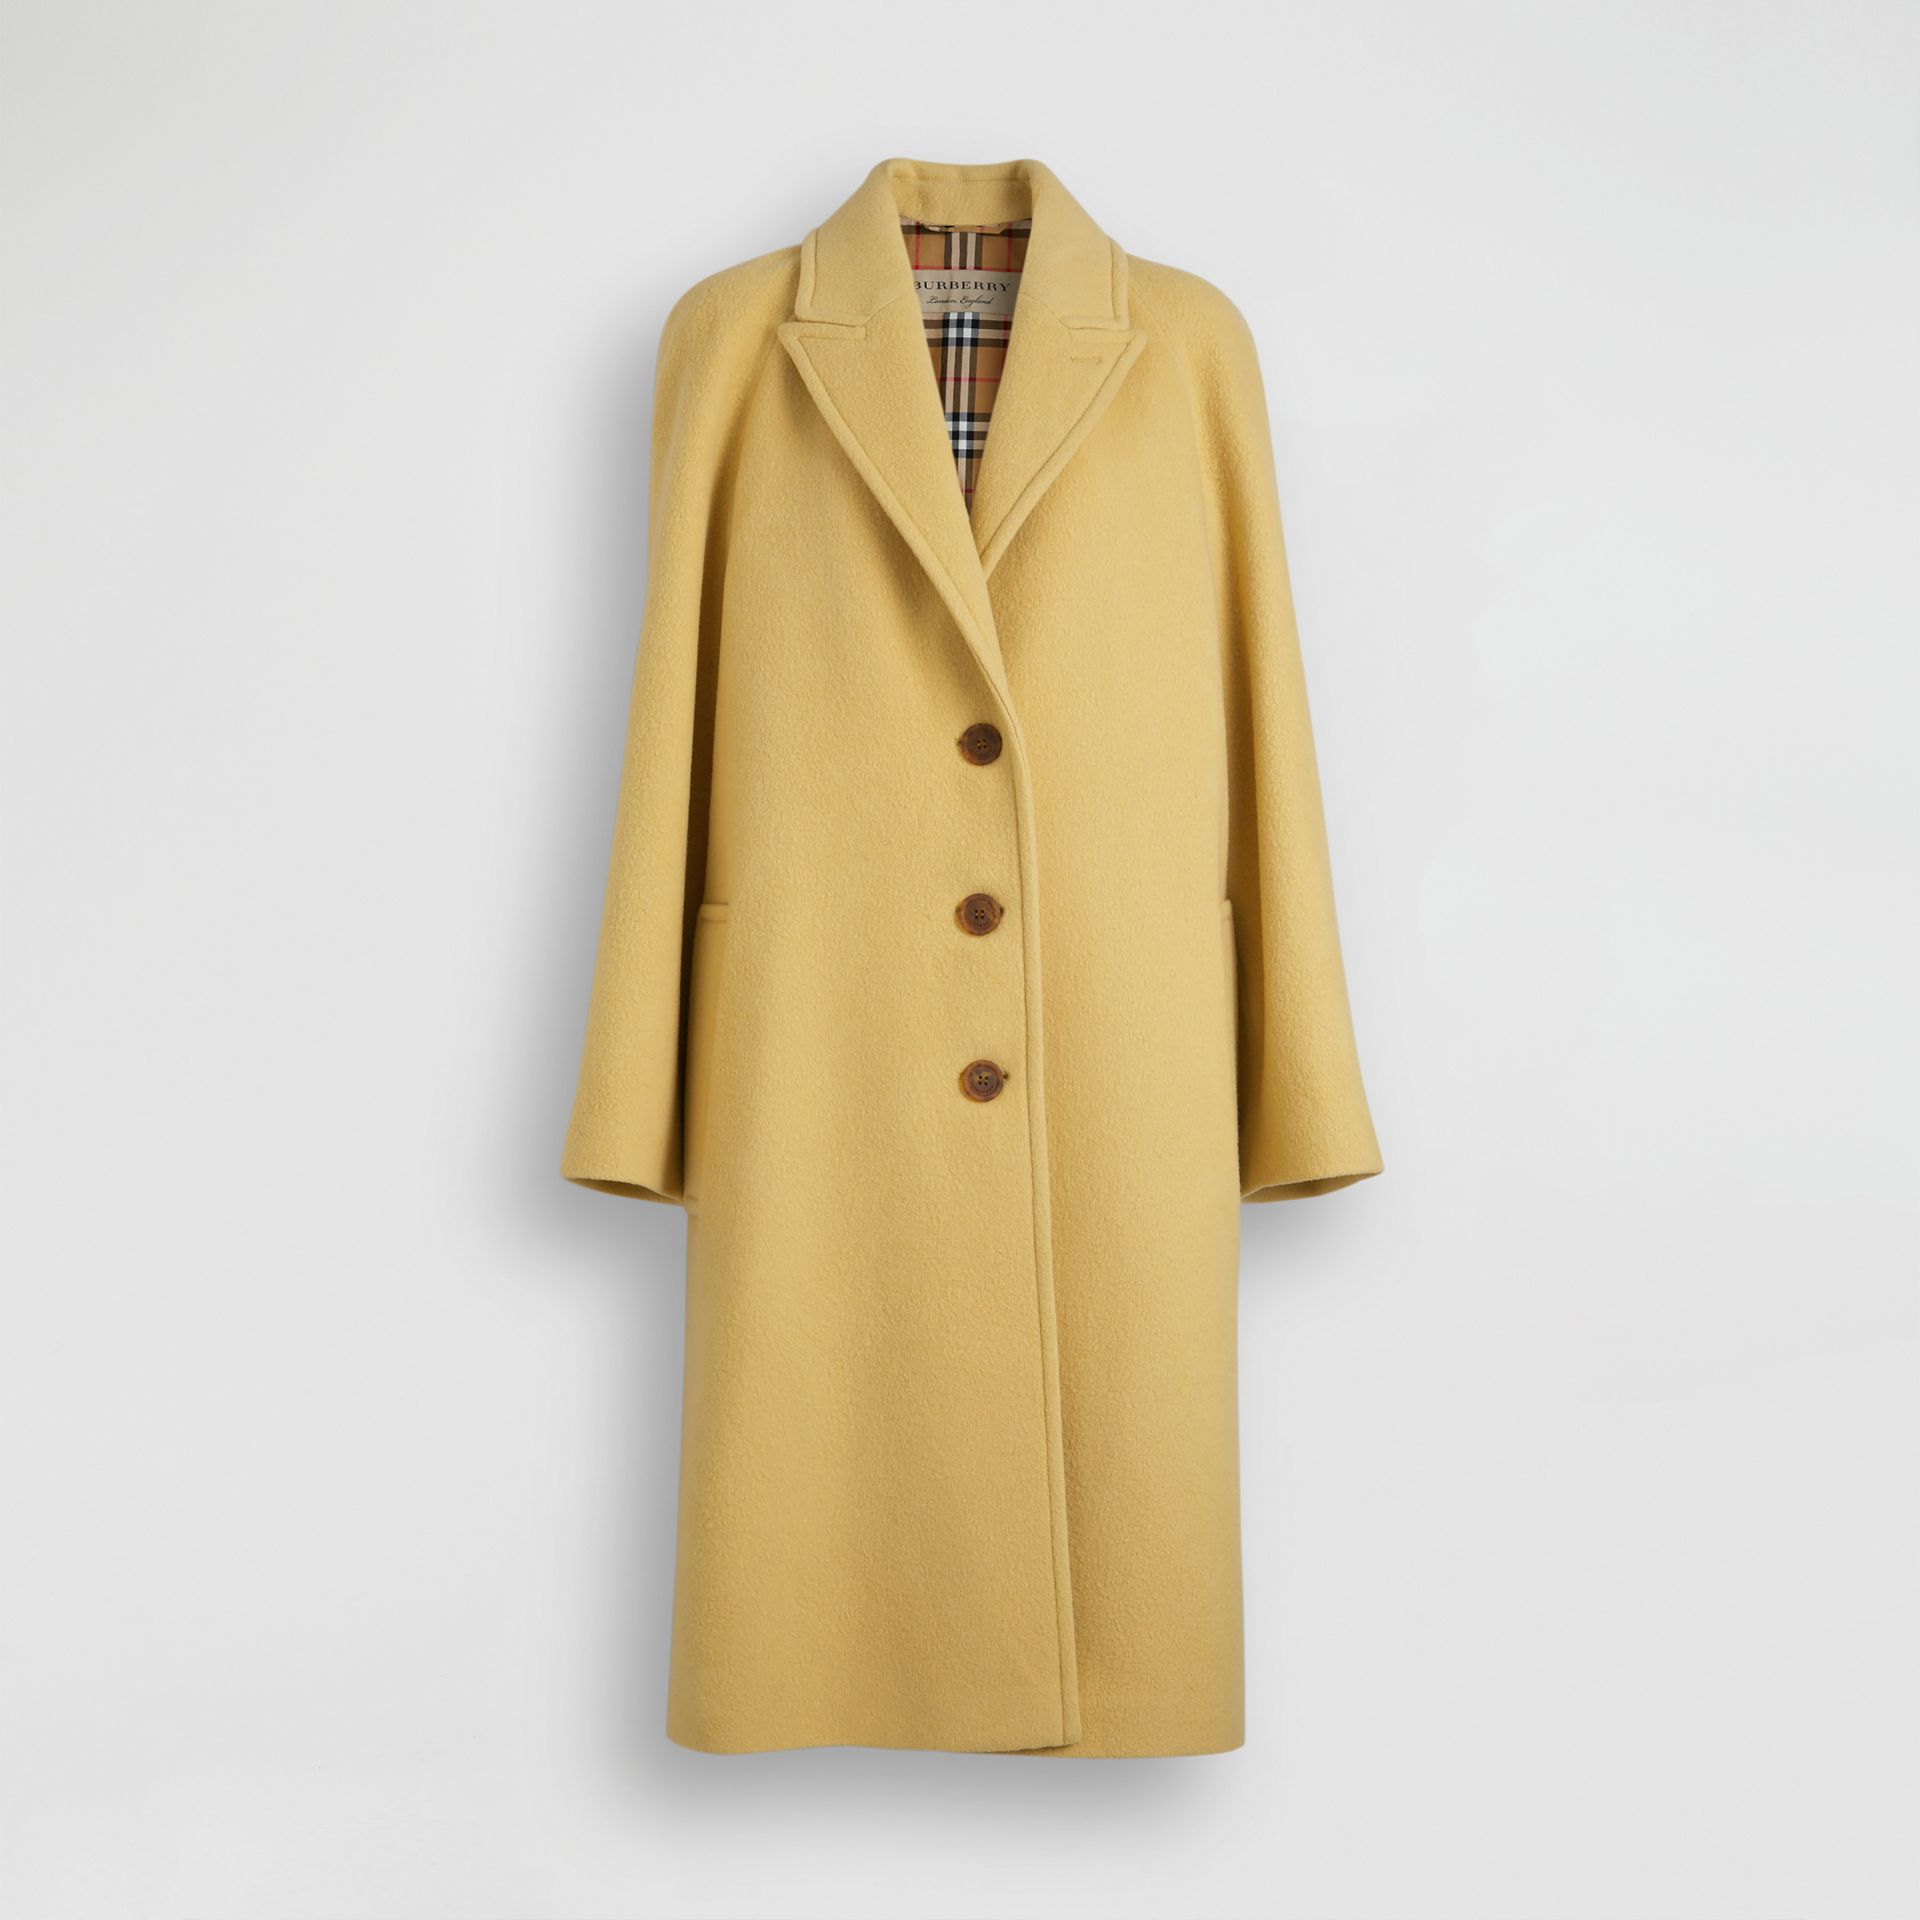 Wool Blend Tailored Coat in Camomile - Women | Burberry Canada - gallery image 3